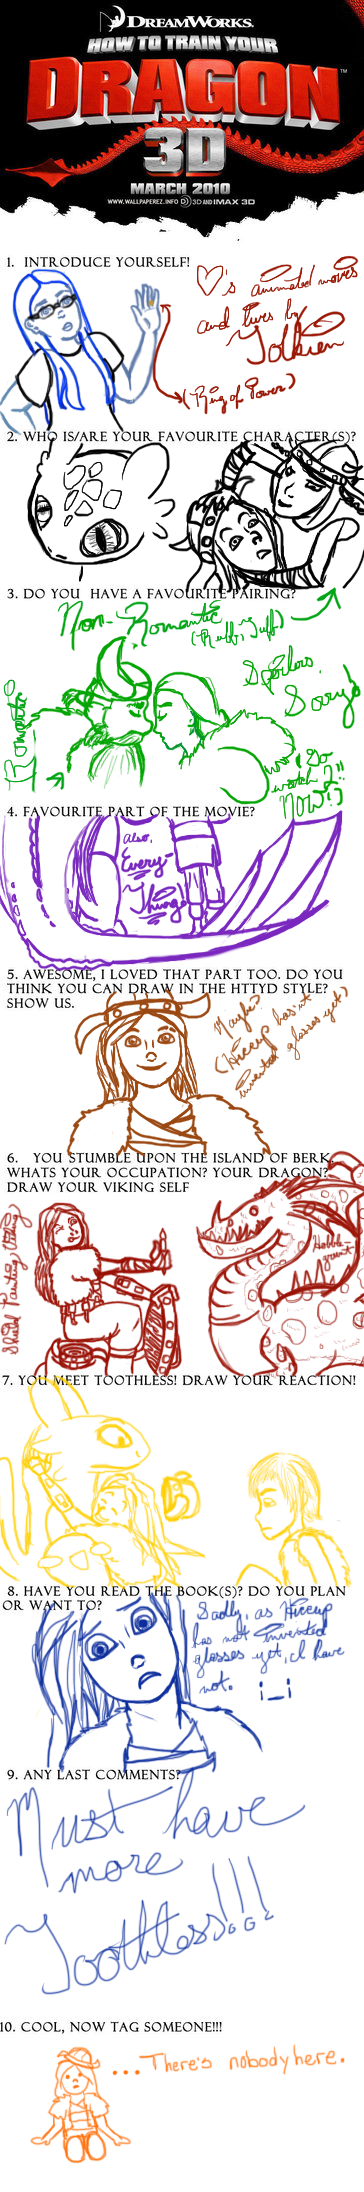 How To Train Your Dragon Meme by archangelmary